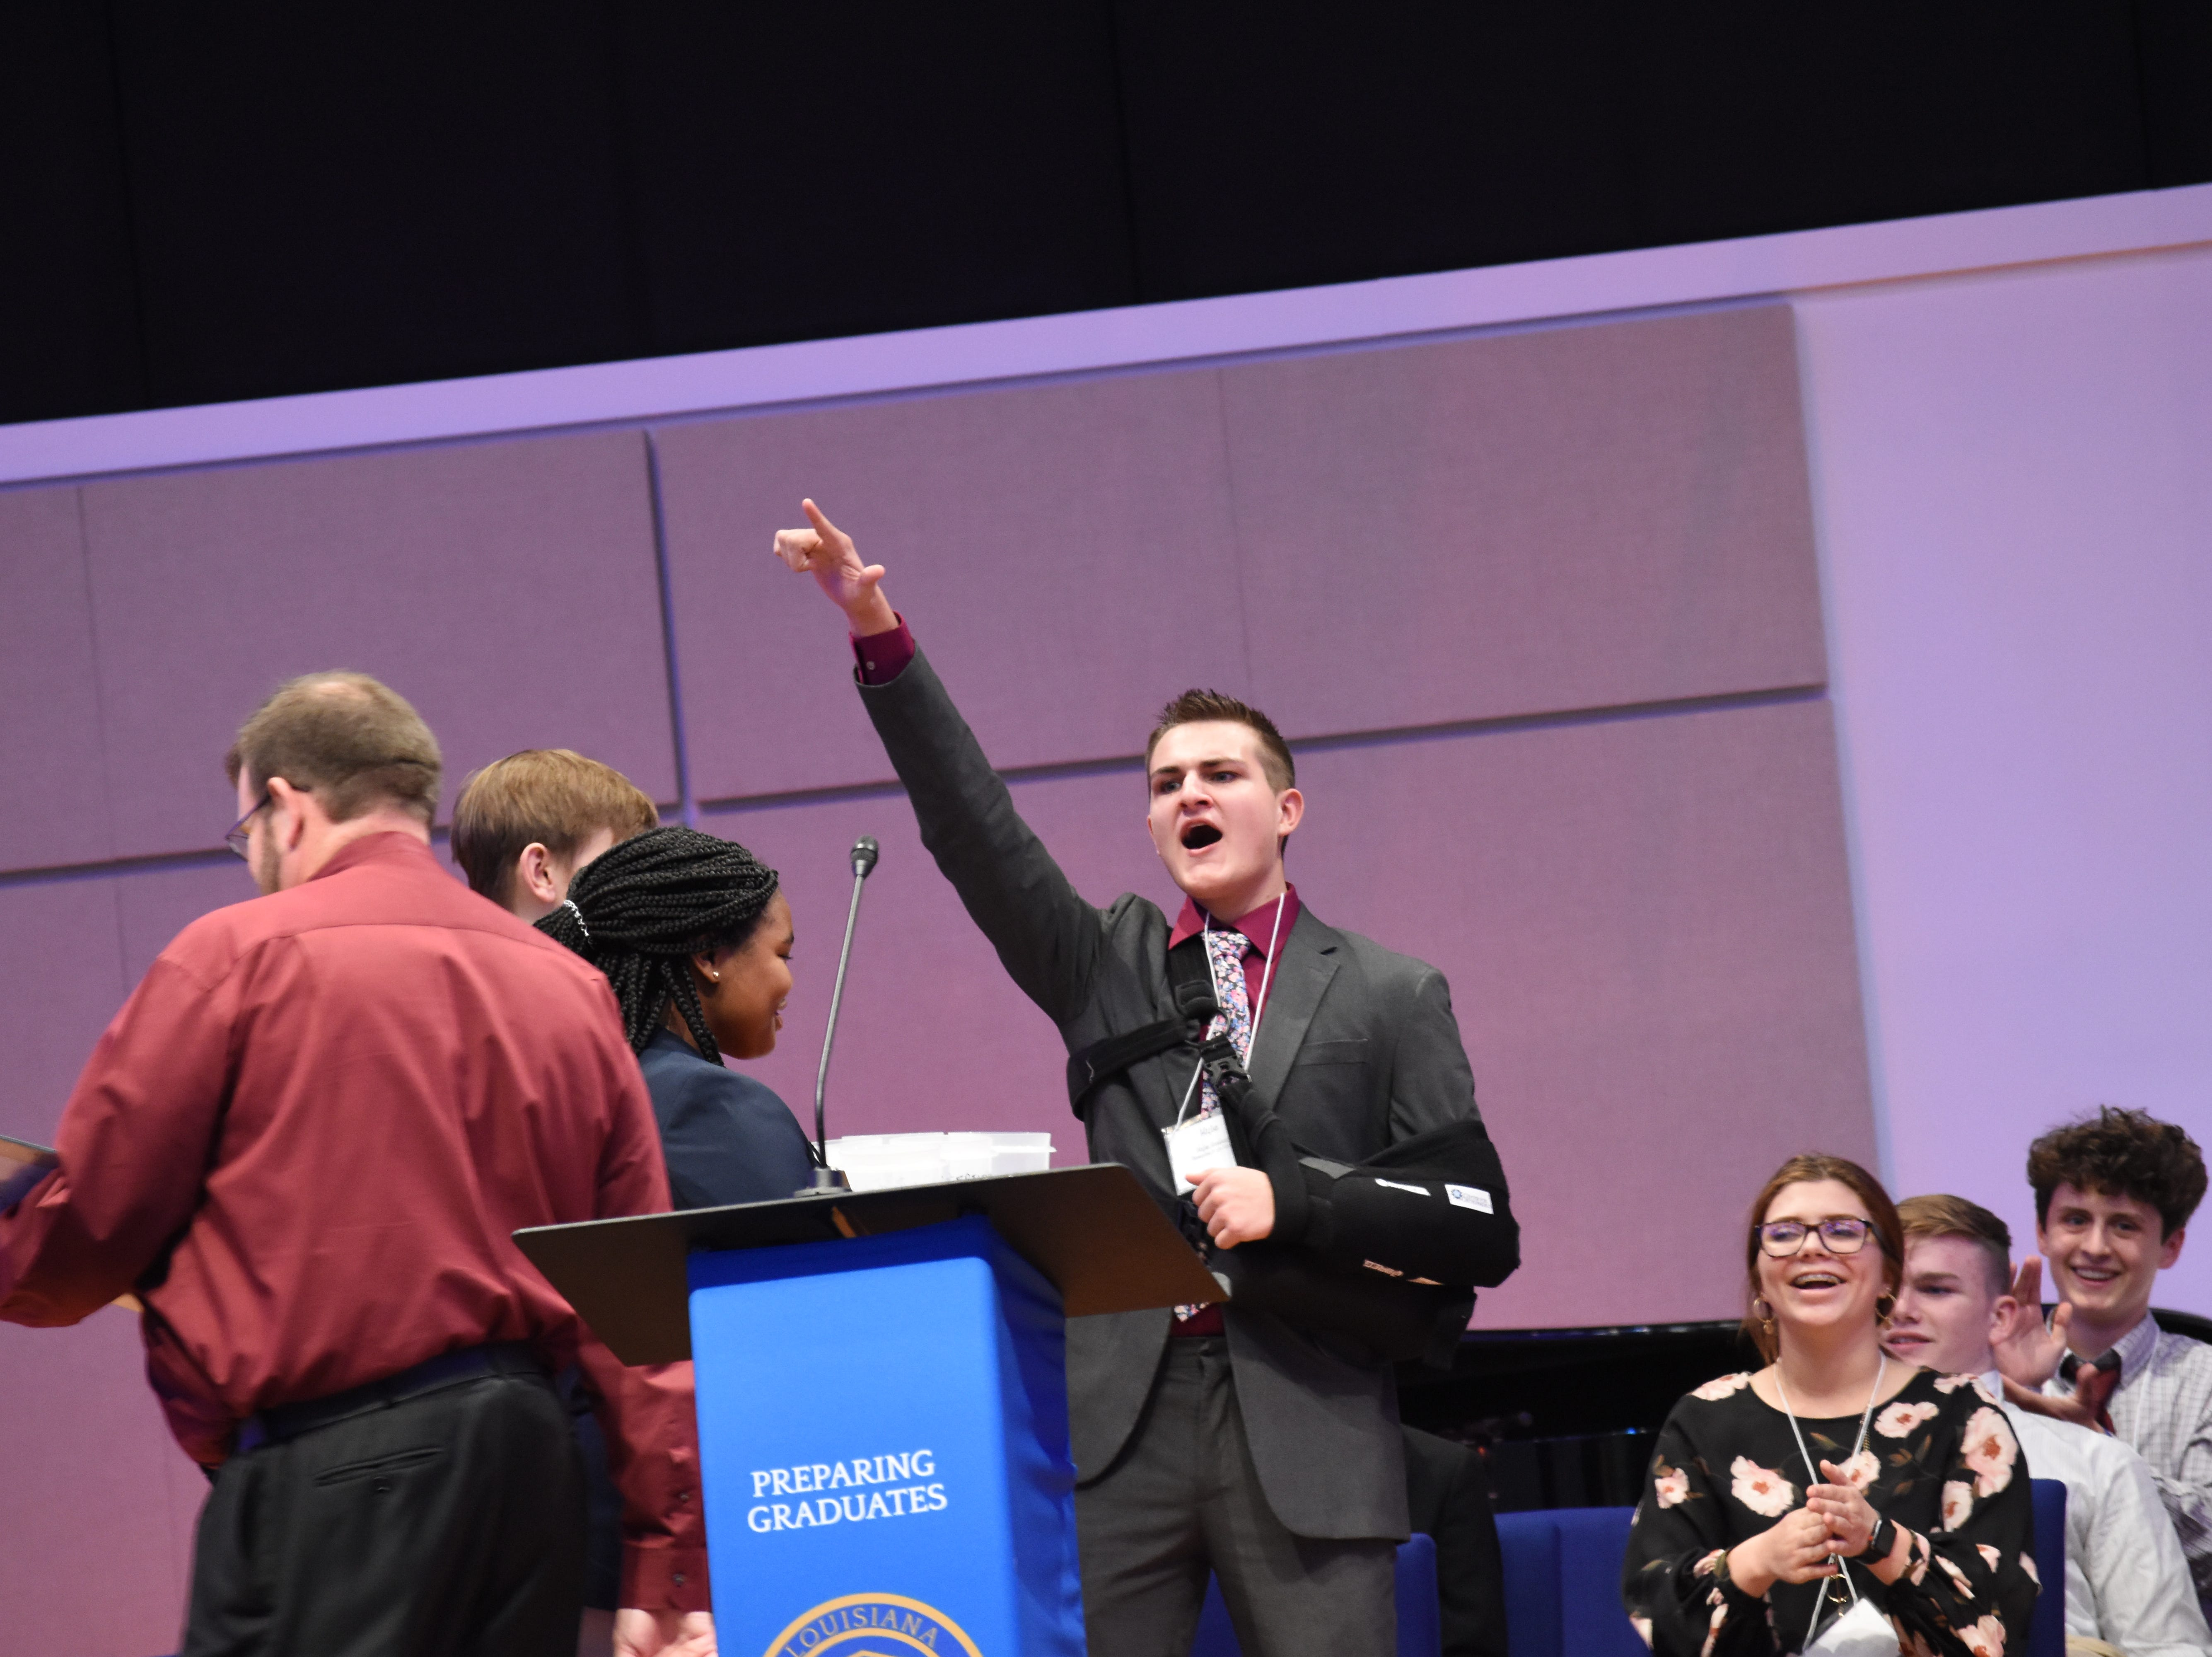 Kyle Bosley, a 10th grade student from Rosepine High School, celebrates after correctly answering an entertainment question in a current events event that was part of the Future Business Leaders of America event held at Louisiana College Thursday, Jan. 254, 2019. The Pitkin High School Chapter of the Future Business Leaders of America hosted its annual conference at the college. About 500 students from various high schools throughout the region attended. Students took various tests in subjects such as advertising, economics and business math and attended classes in subjects such as broadcast journalism, impromptu speaking and public speaking.